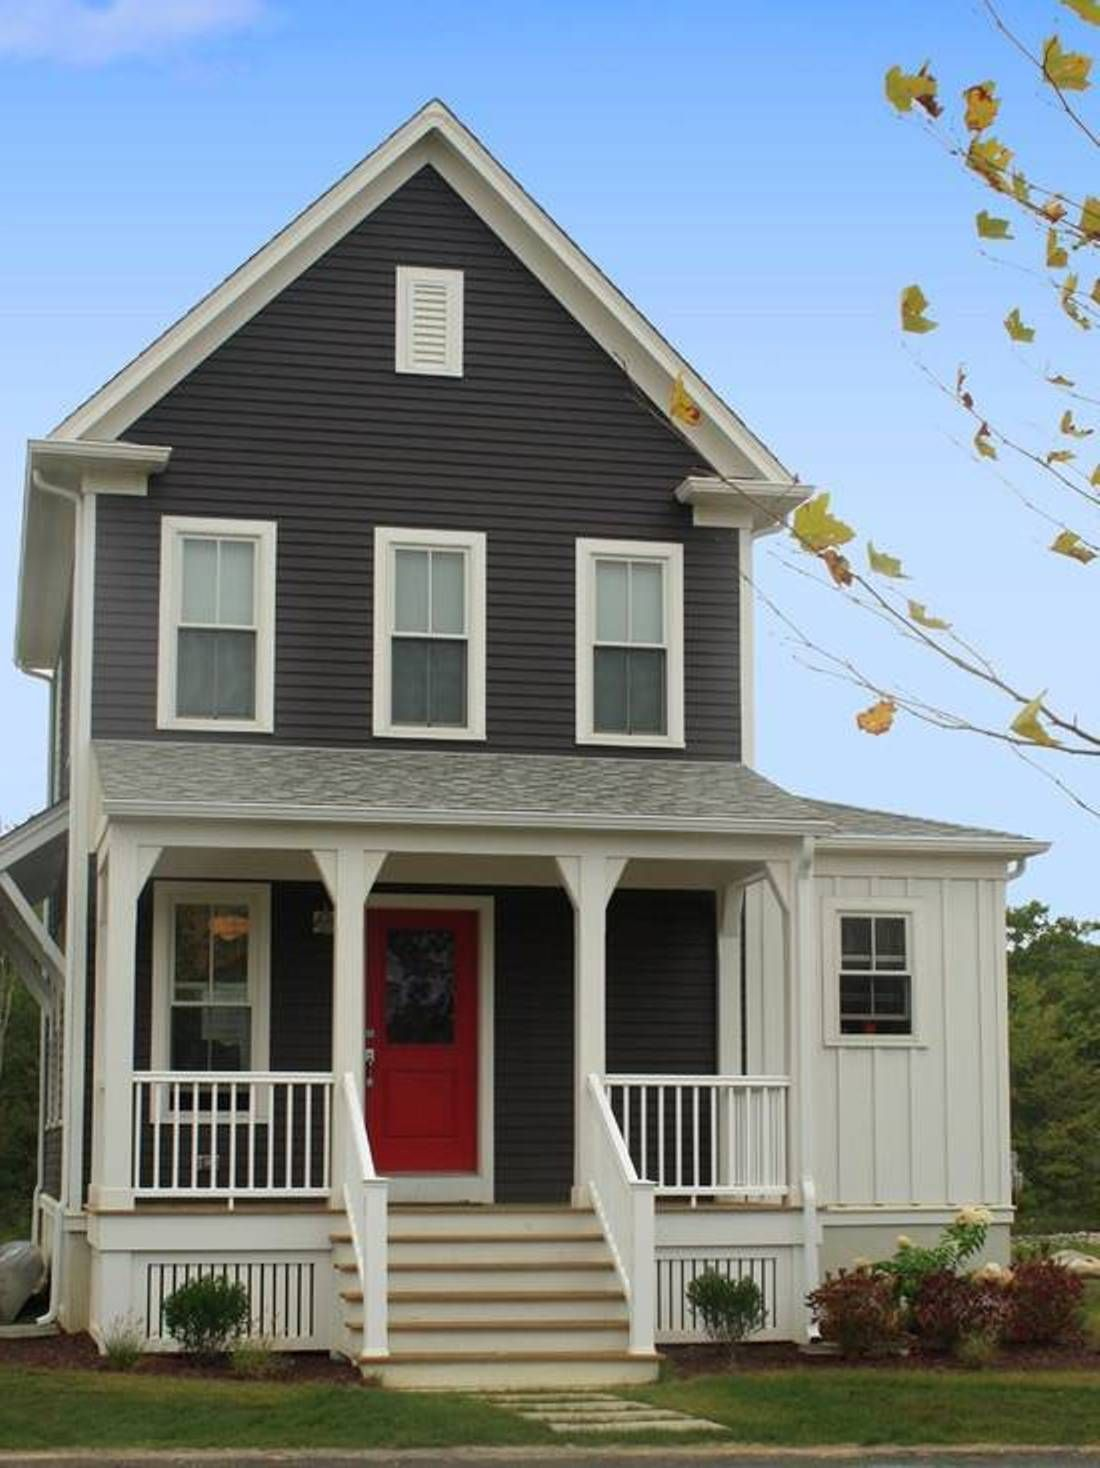 Stupendous Exterior House Colors Hot Trends Homes Fast Turnaround New Largest Home Design Picture Inspirations Pitcheantrous